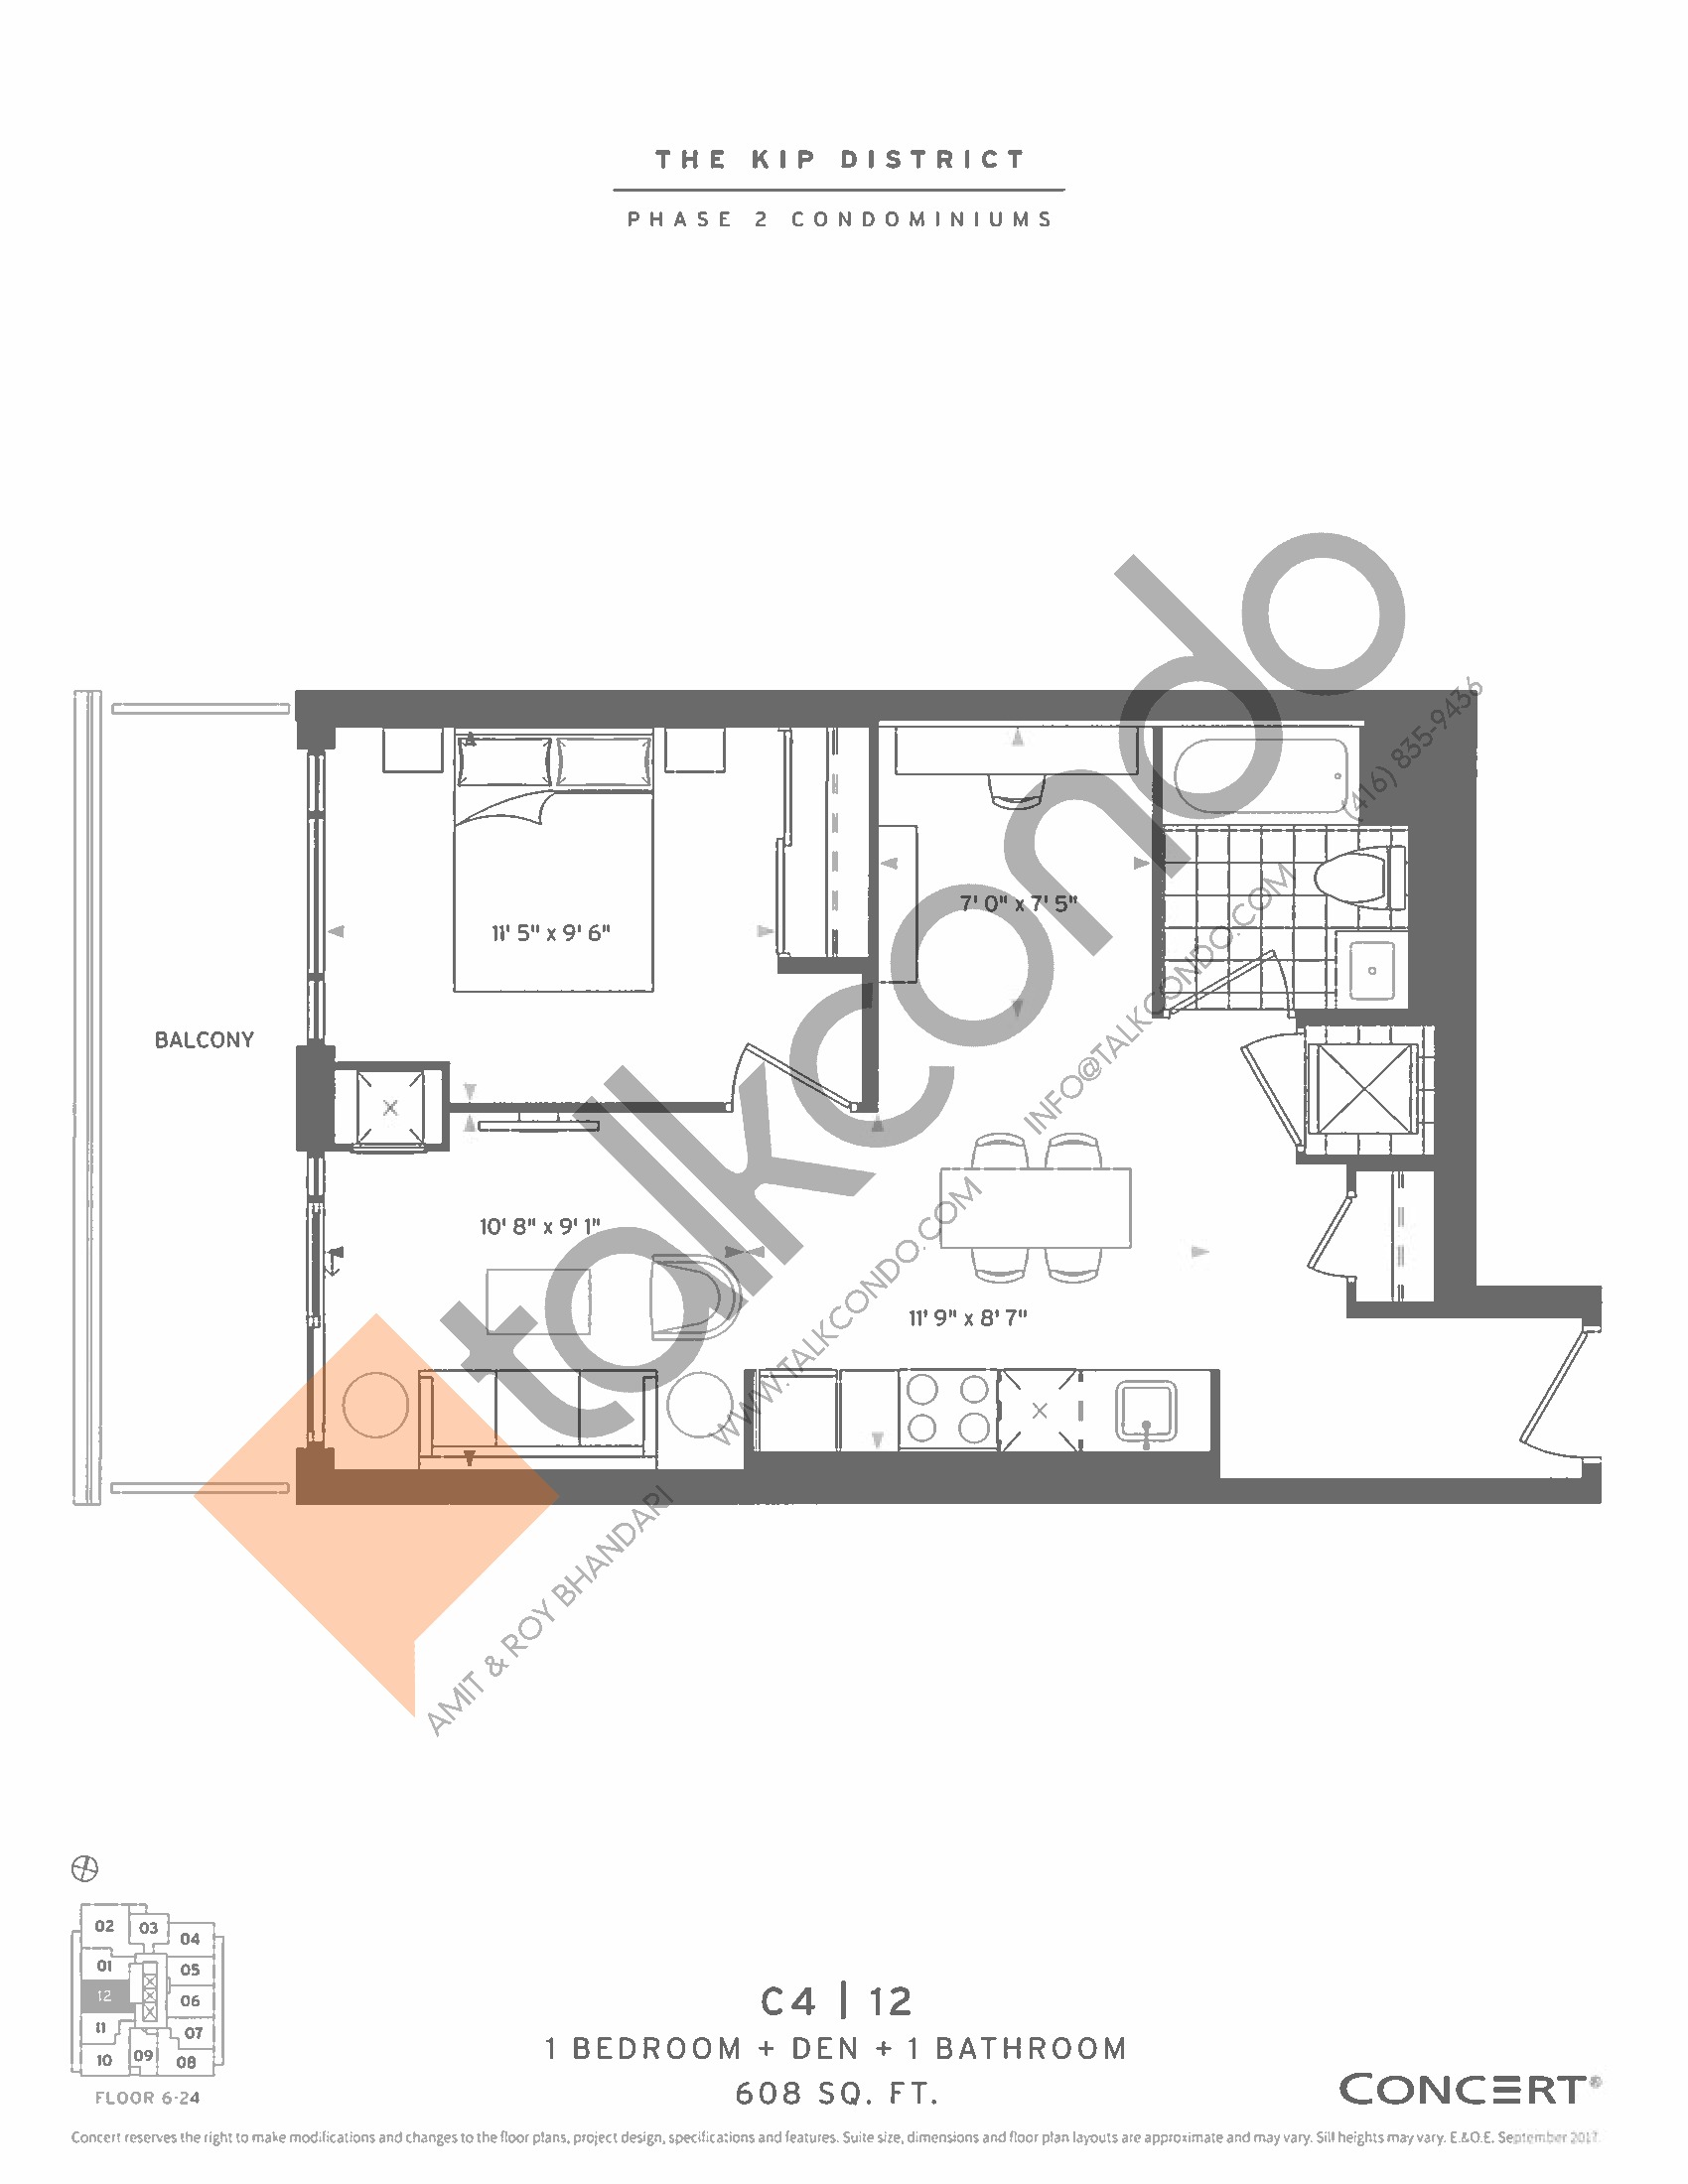 C4 | 12 Floor Plan at The Kip District Phase 2 Condos - 608 sq.ft